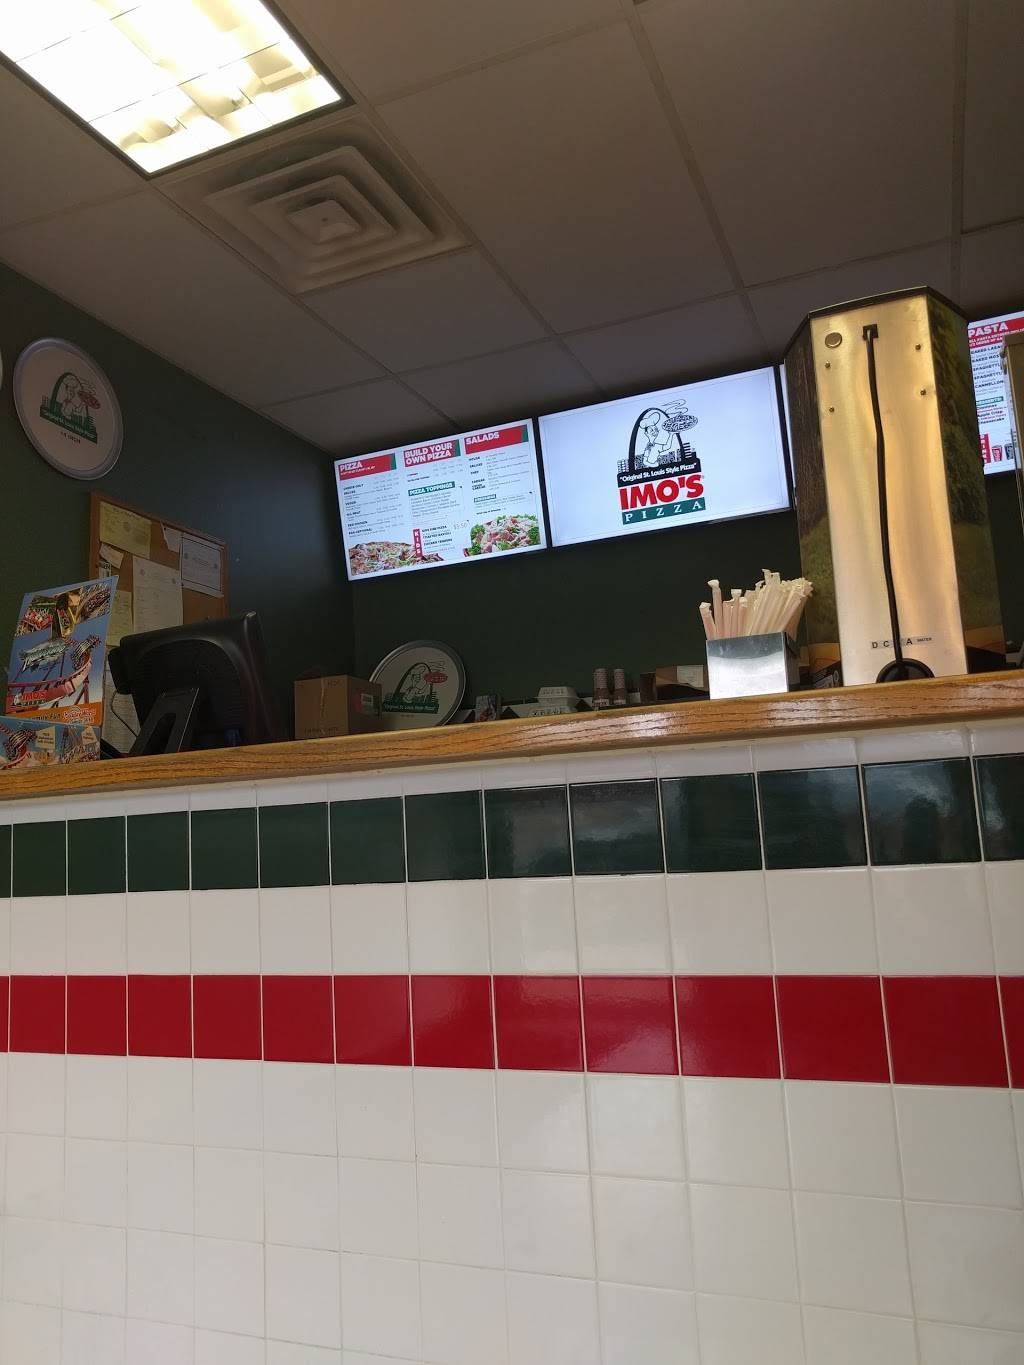 Imos Pizza - meal delivery  | Photo 3 of 10 | Address: 5806 Hampton Ave, St. Louis, MO 63109, USA | Phone: (314) 832-9677